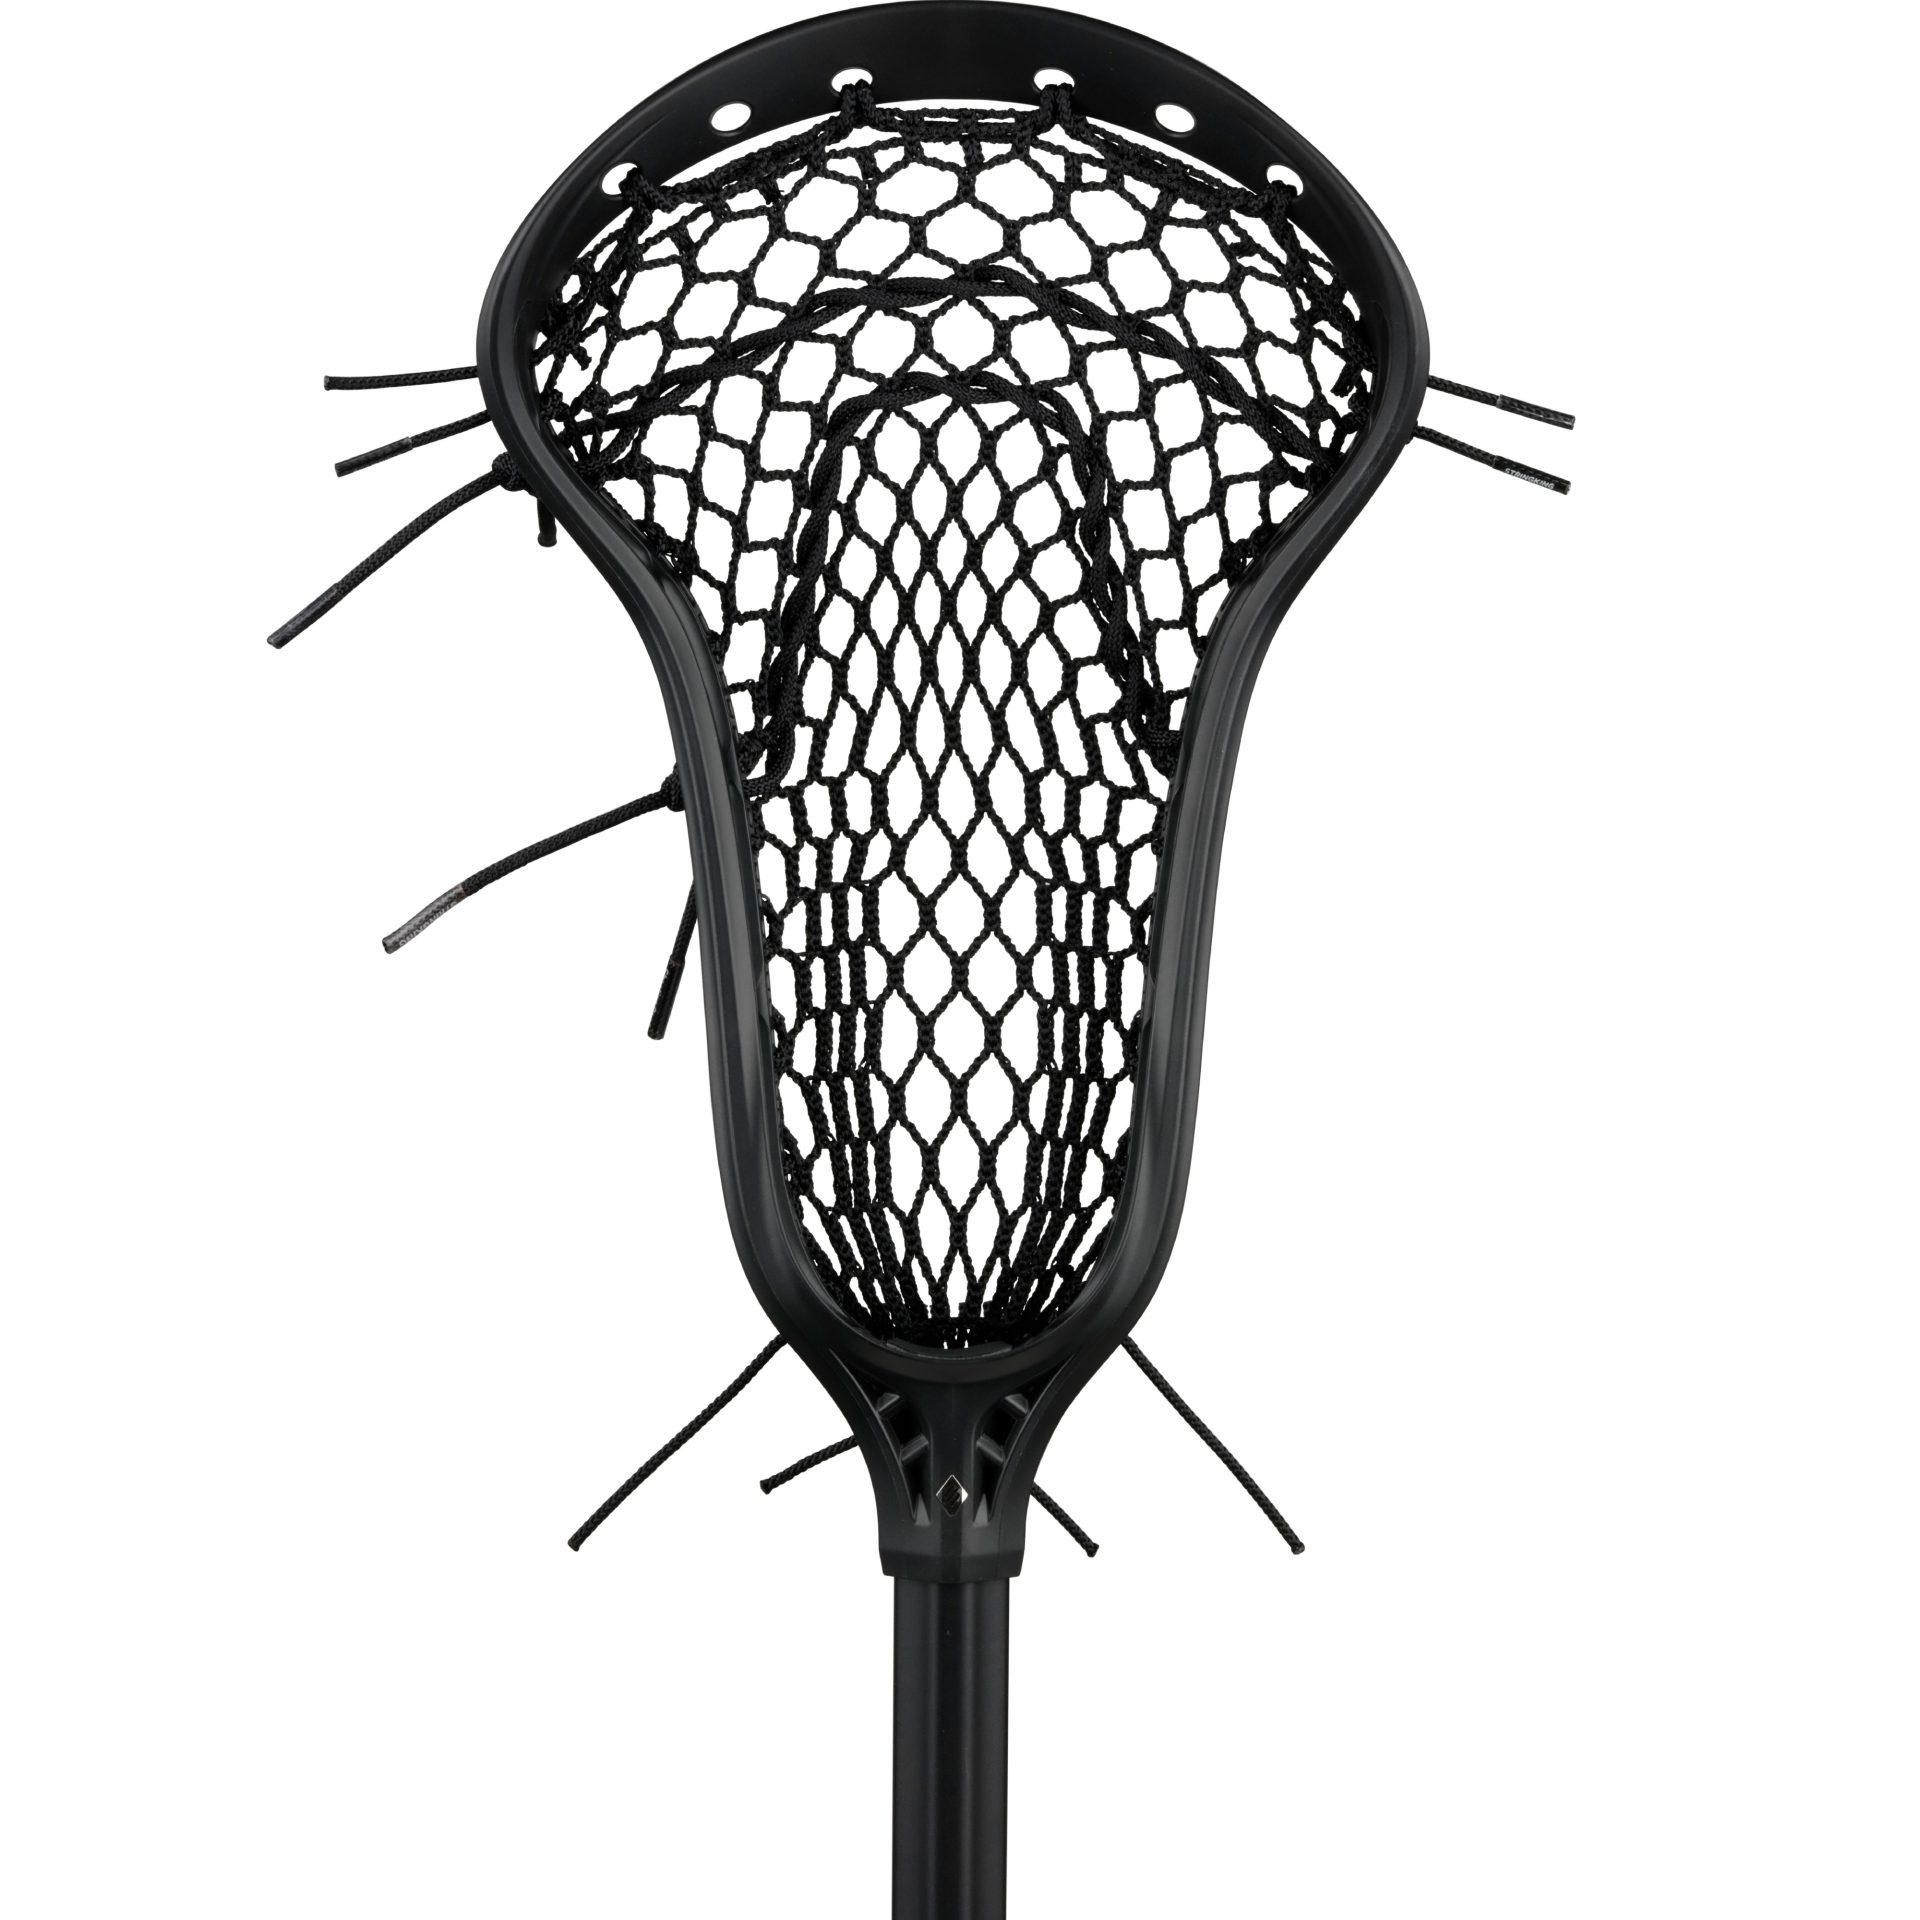 StringKing Complete 2 Pro Midfield Lacrosse Stick Face Strung Black